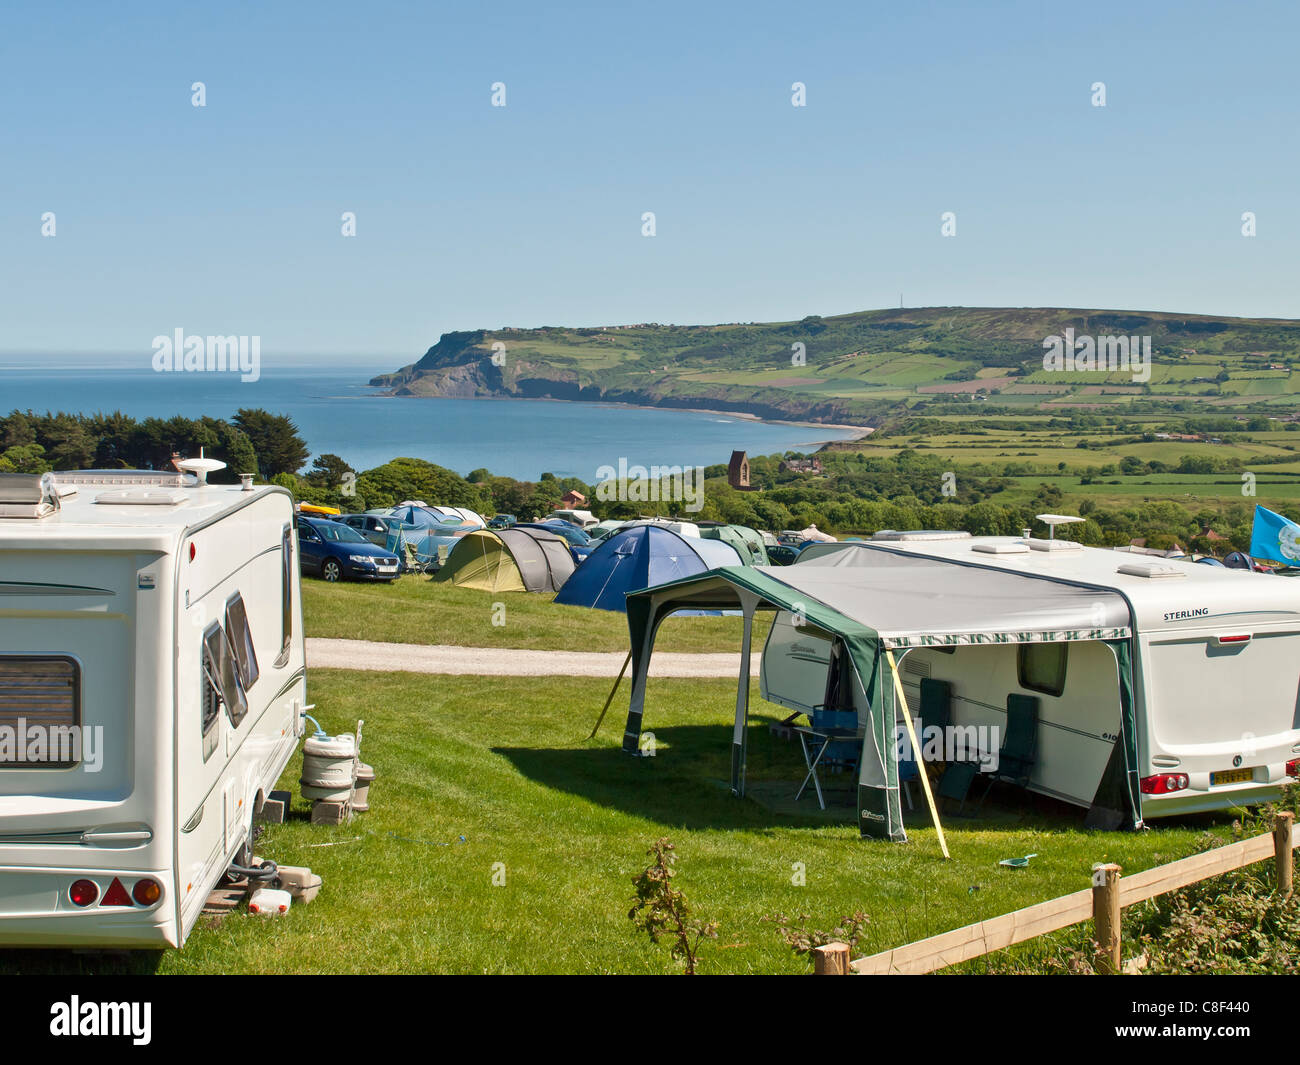 Creative So Glad That We Stayed In Flossie Caravan Lovely Quiet Site And Caravan Certainly Felt Like Home From Home Managed To Sit On Veranda Almost Every Day With A Glass Or Two Of Wine Whilst Reading And Just Chilling Bed Really Comfy And